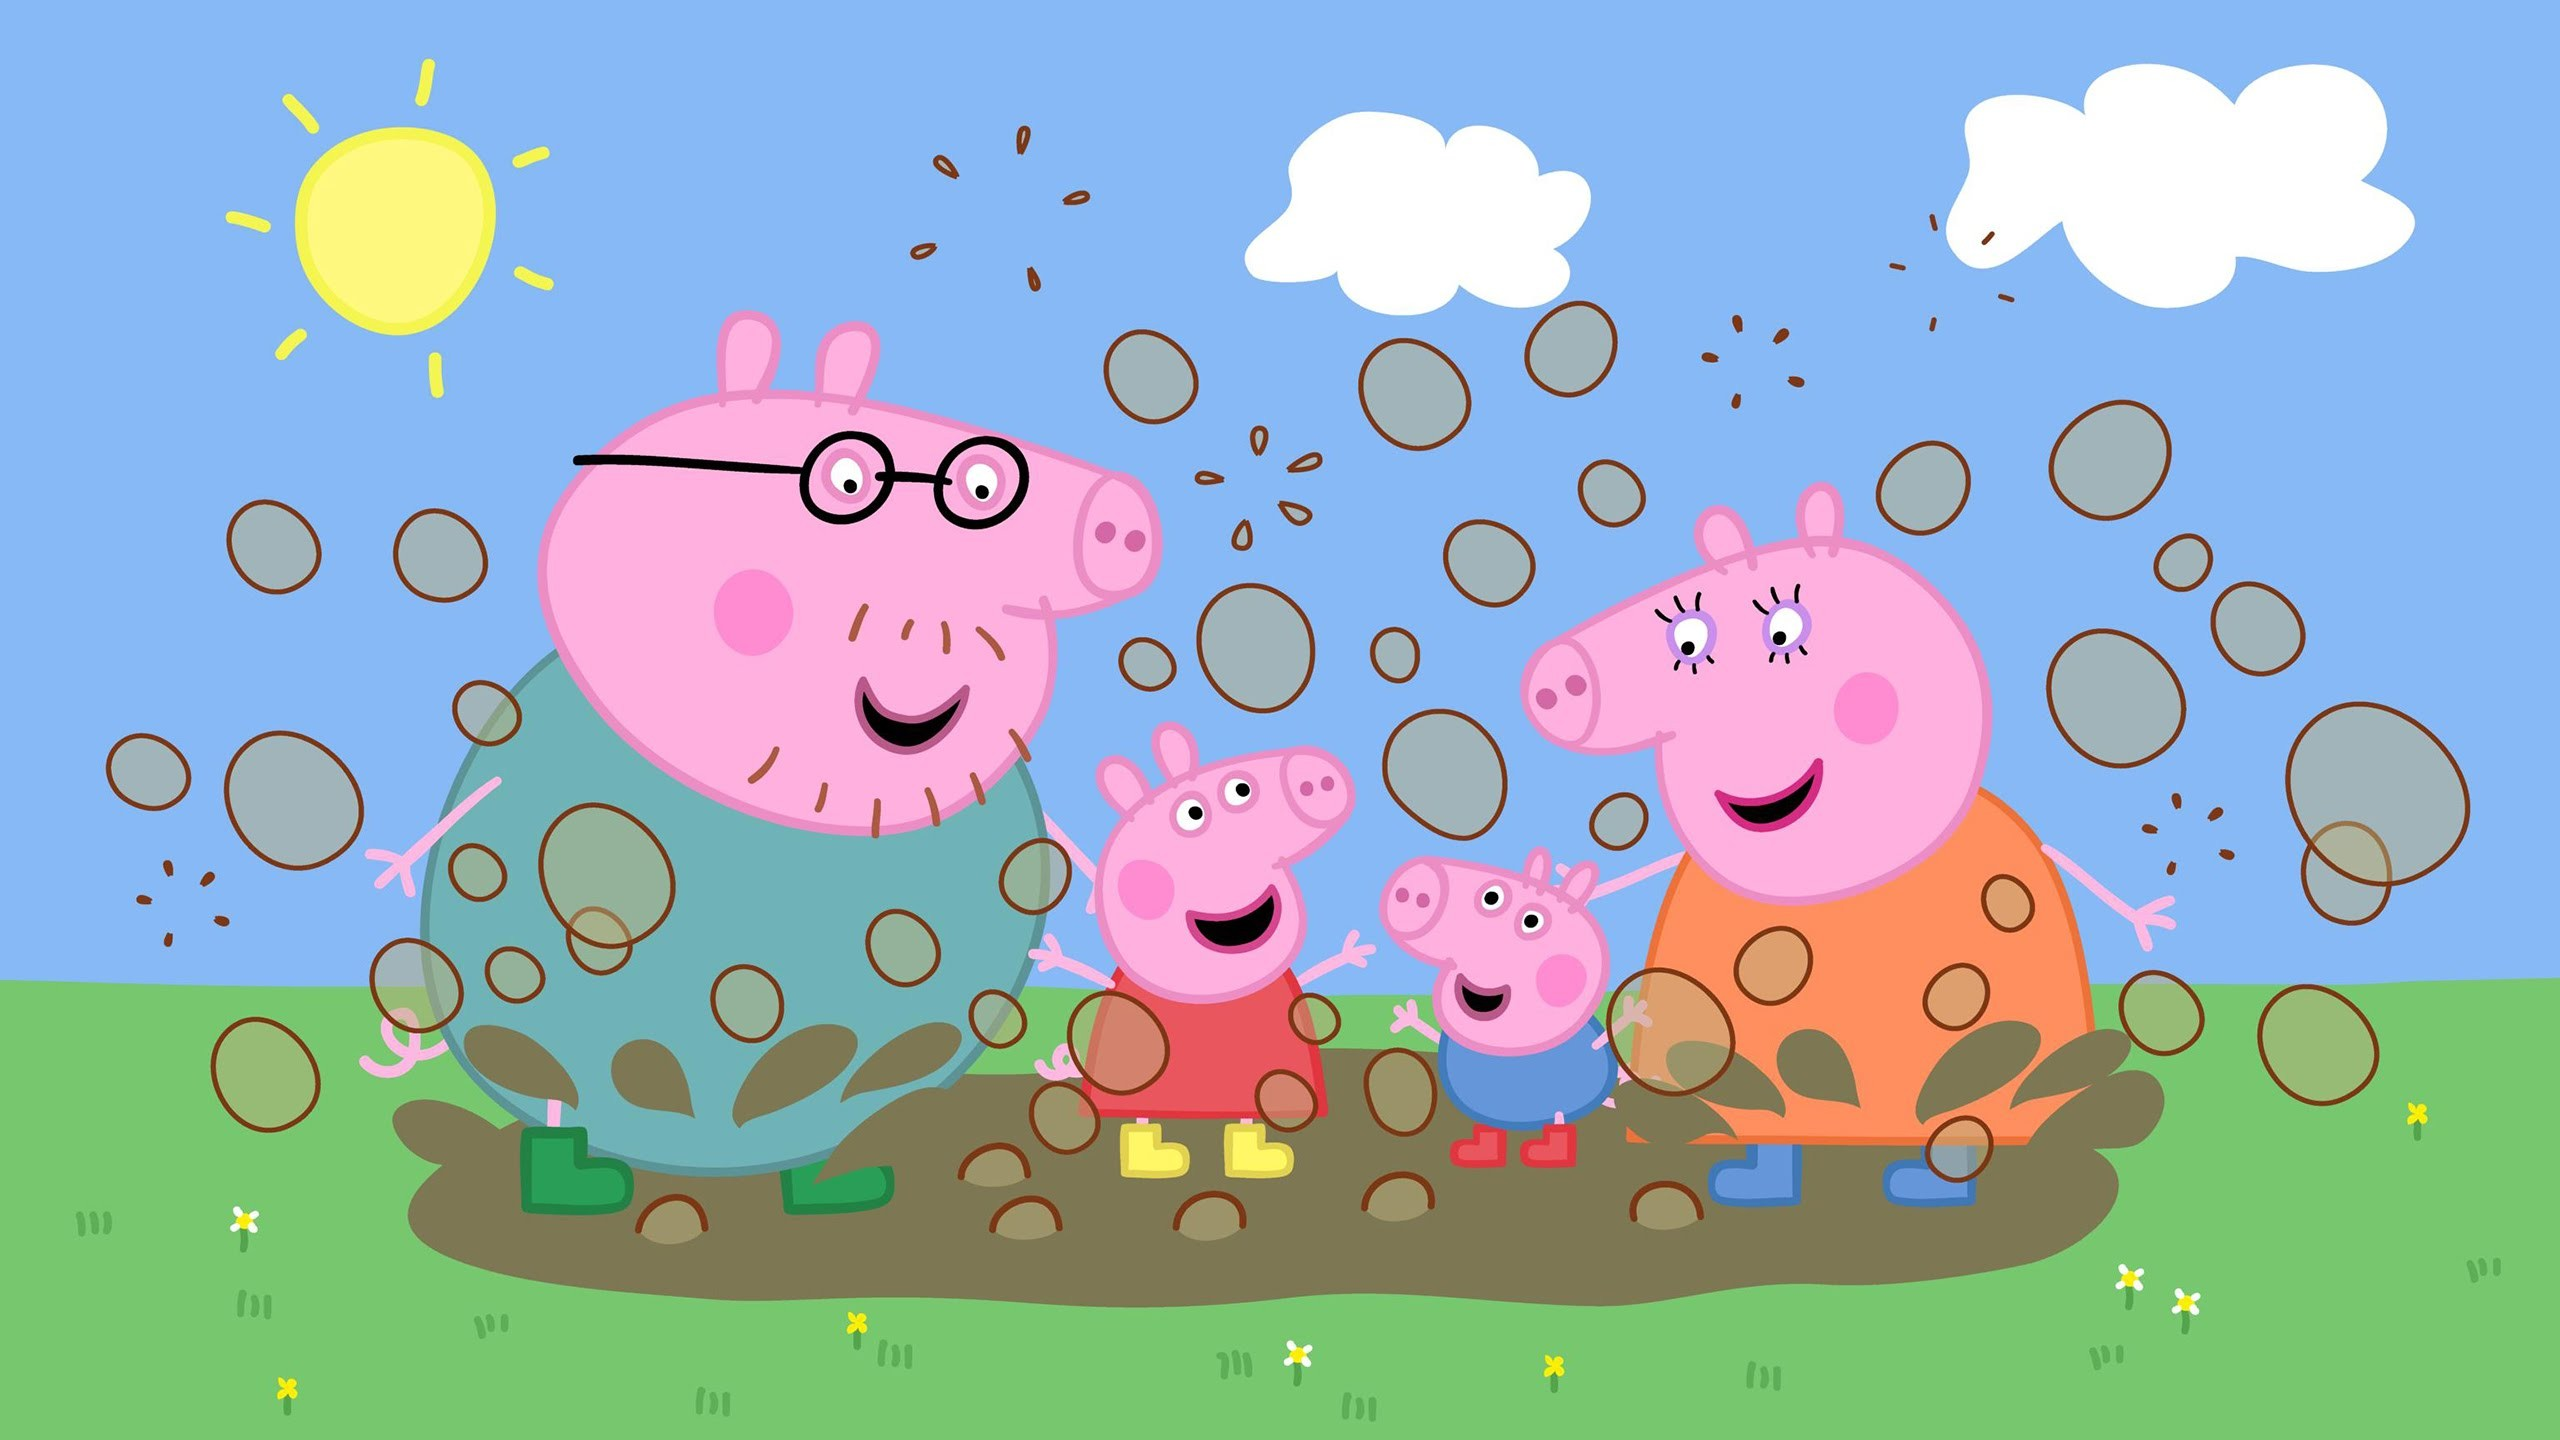 Peppa Pig Coloring Pages For Kids Peppa Pig Coloring Book -Peppa Pig Family  Muddy Puddles MyfunToys – YouTube